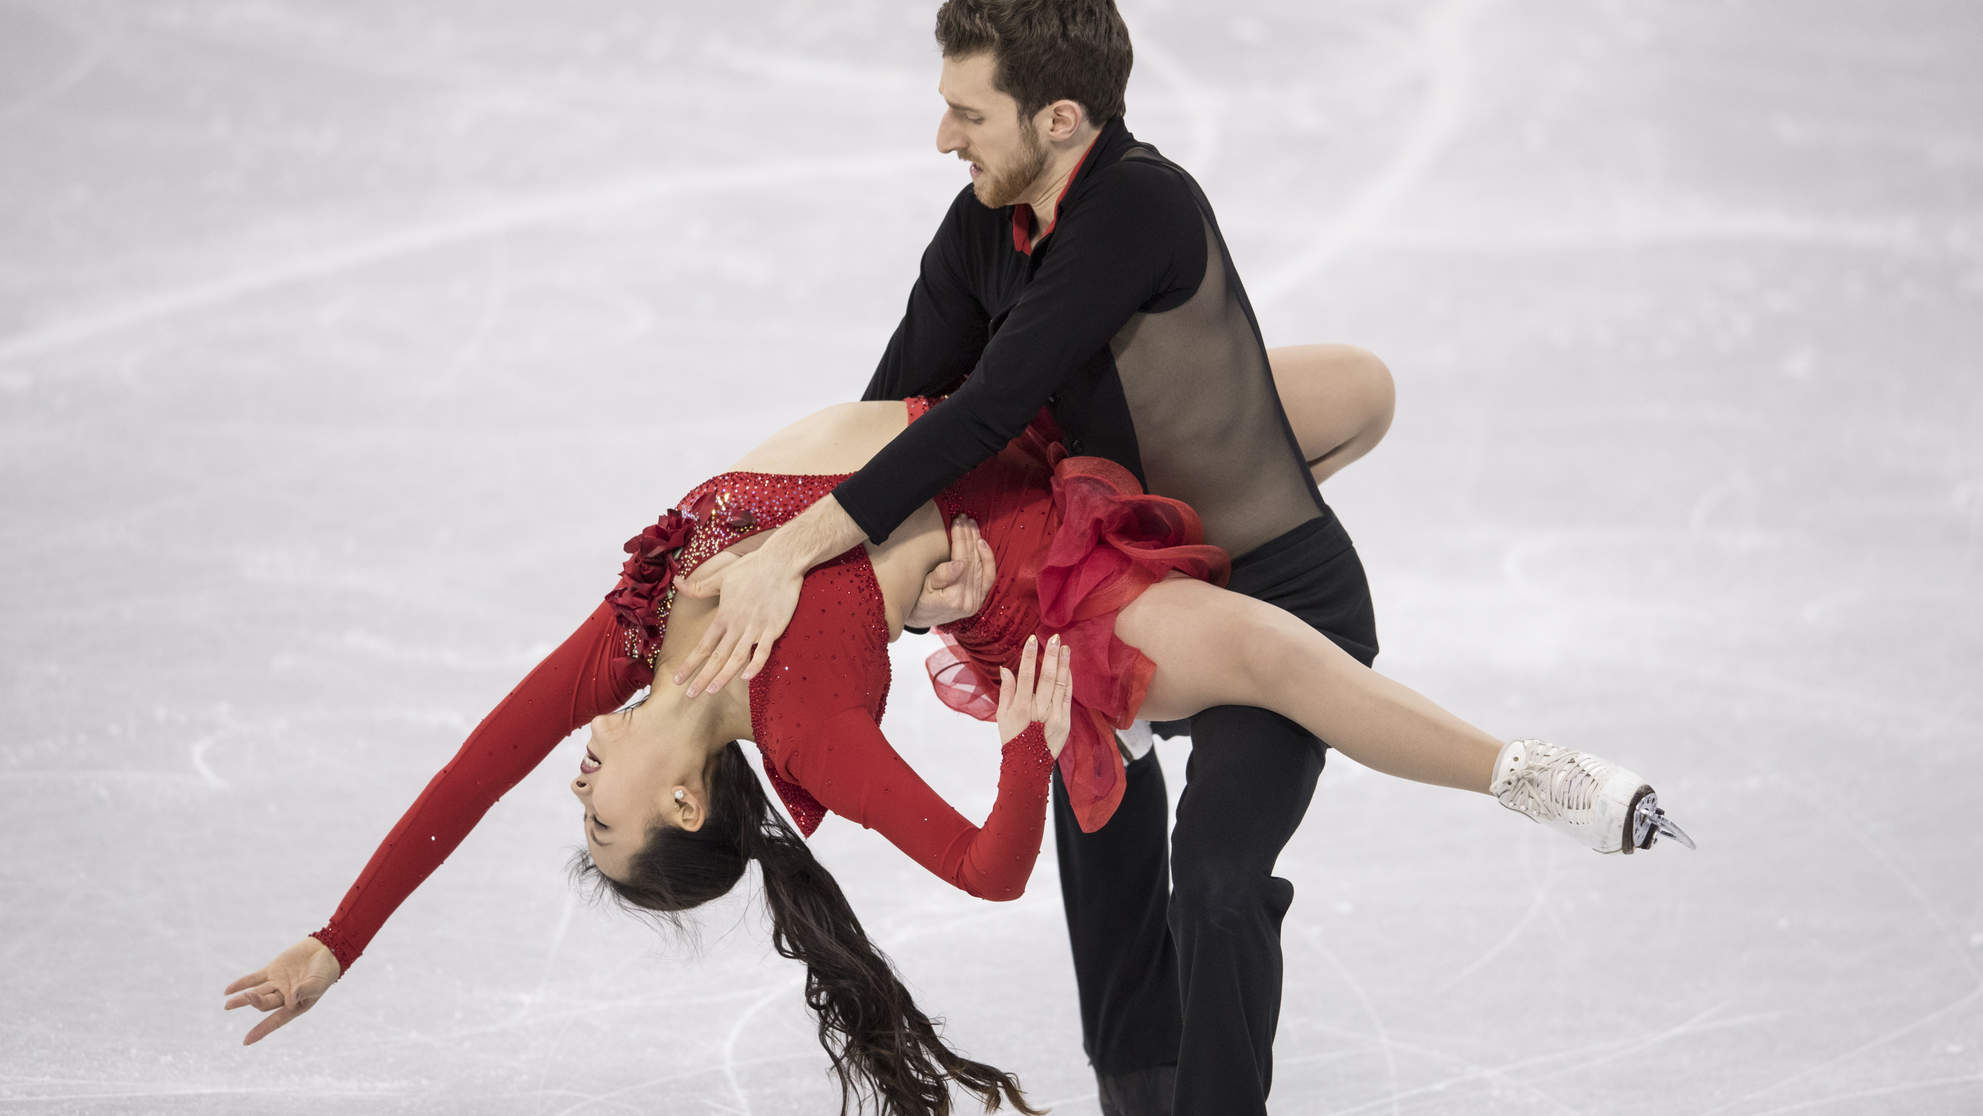 This Olympic Ice Dancer Powered Through a Wardrobe Malfunction Like a Total Pro